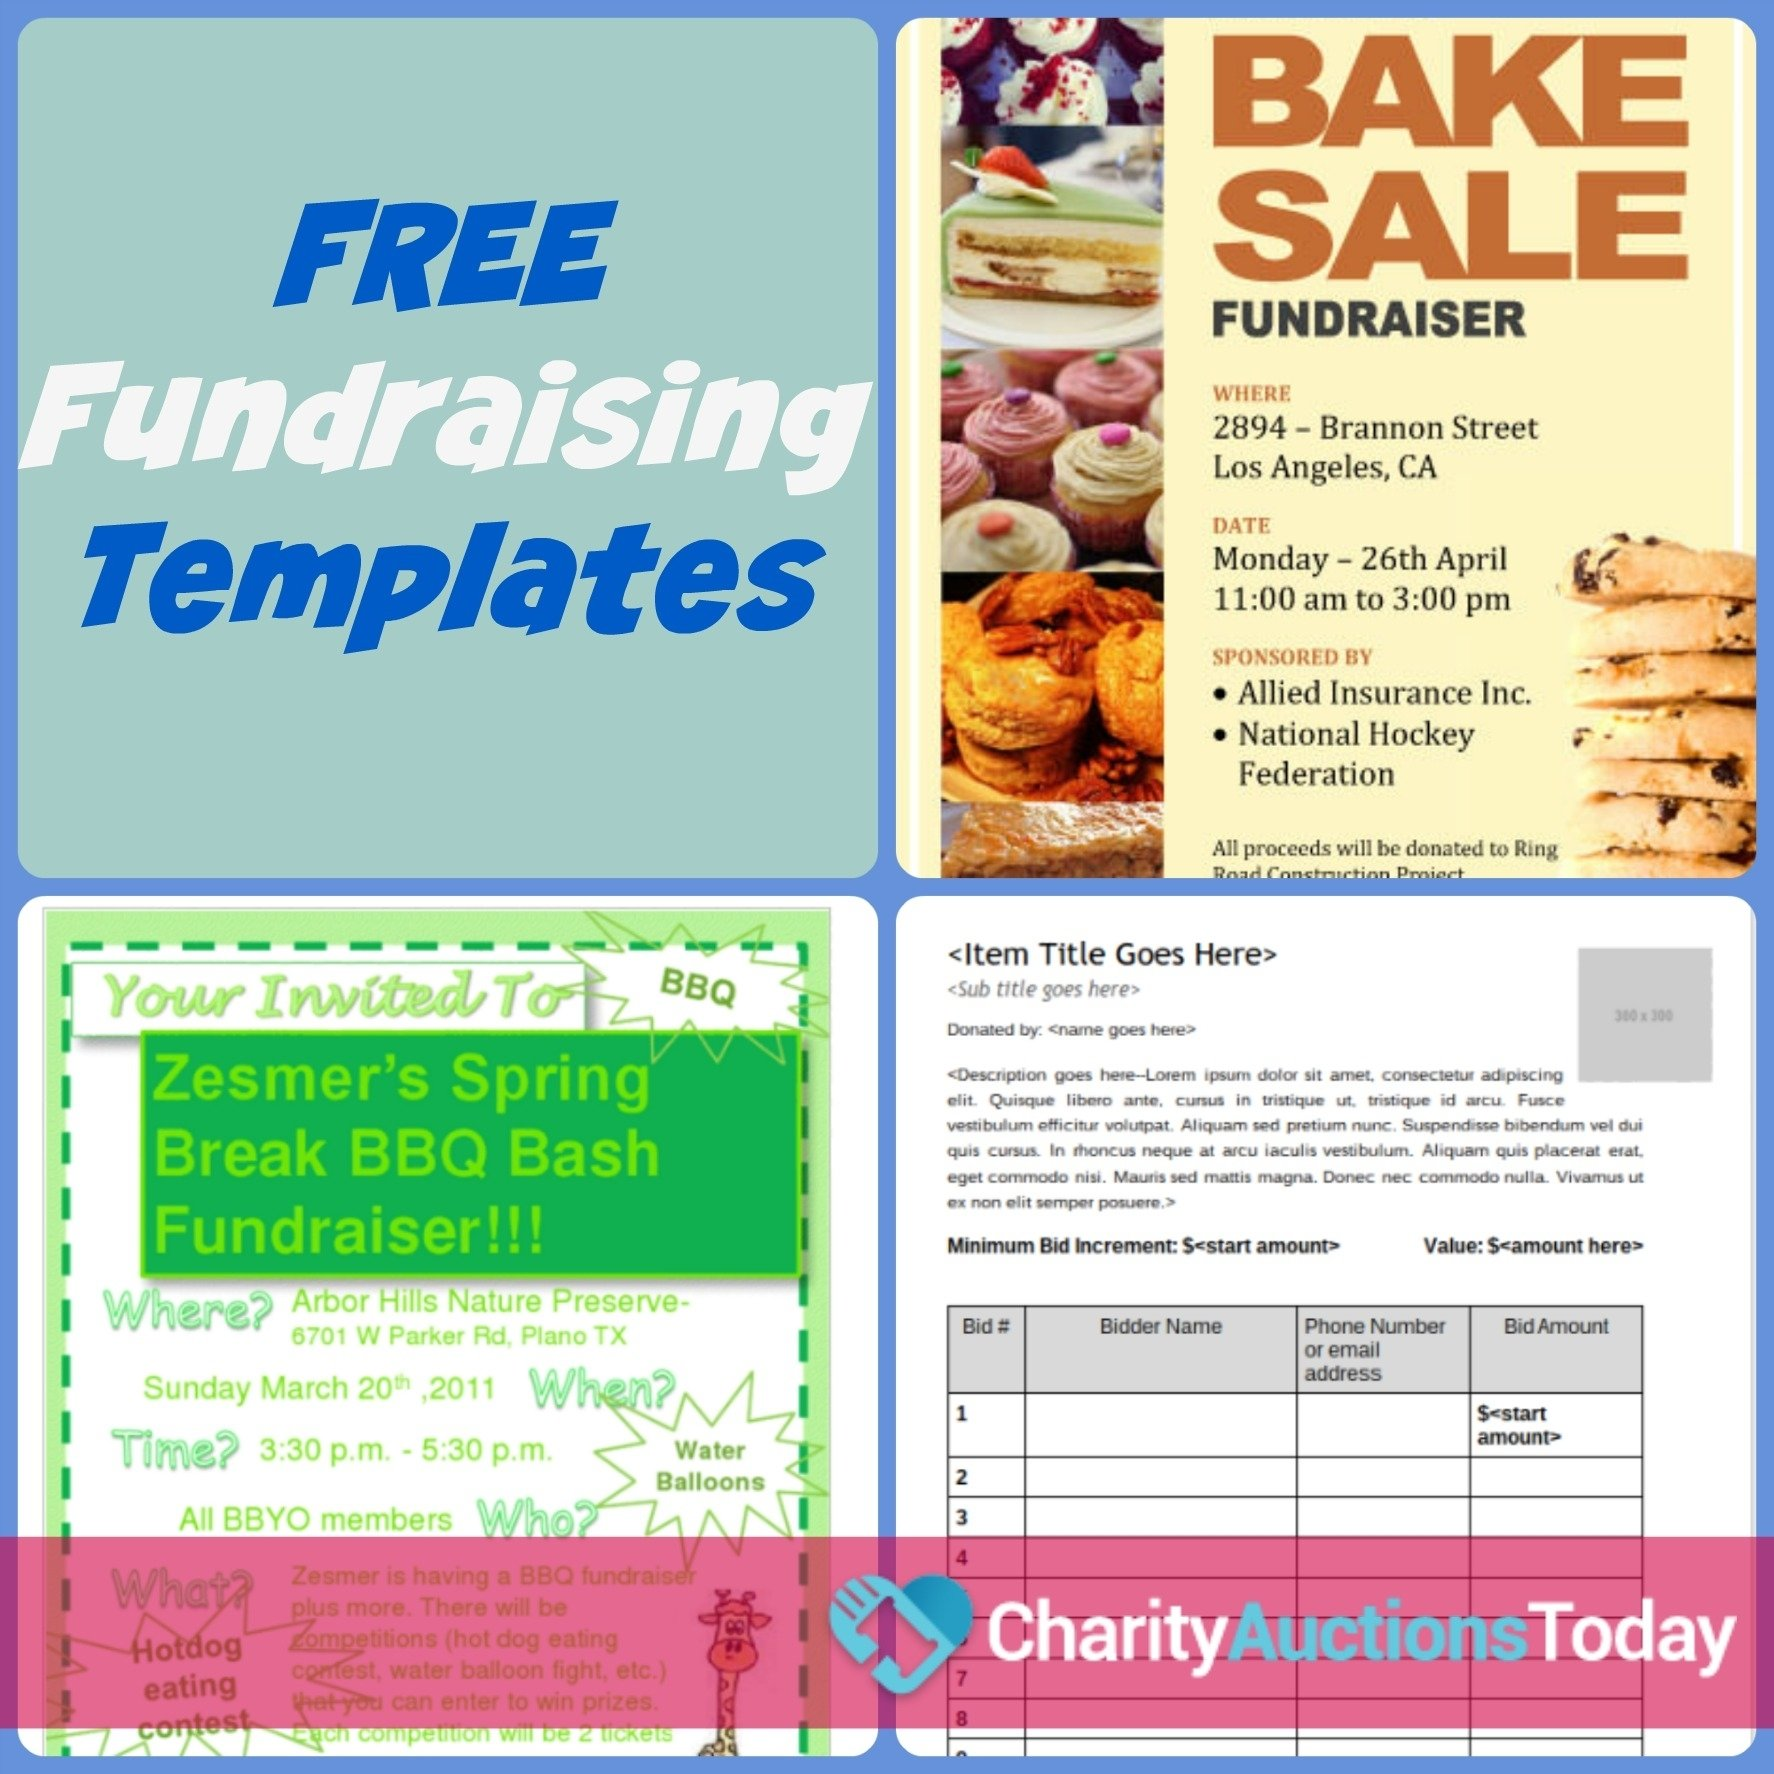 10 Fabulous Fundraiser Ideas For High School 43 school fundraising ideas stepstep guide 2018 update 2020